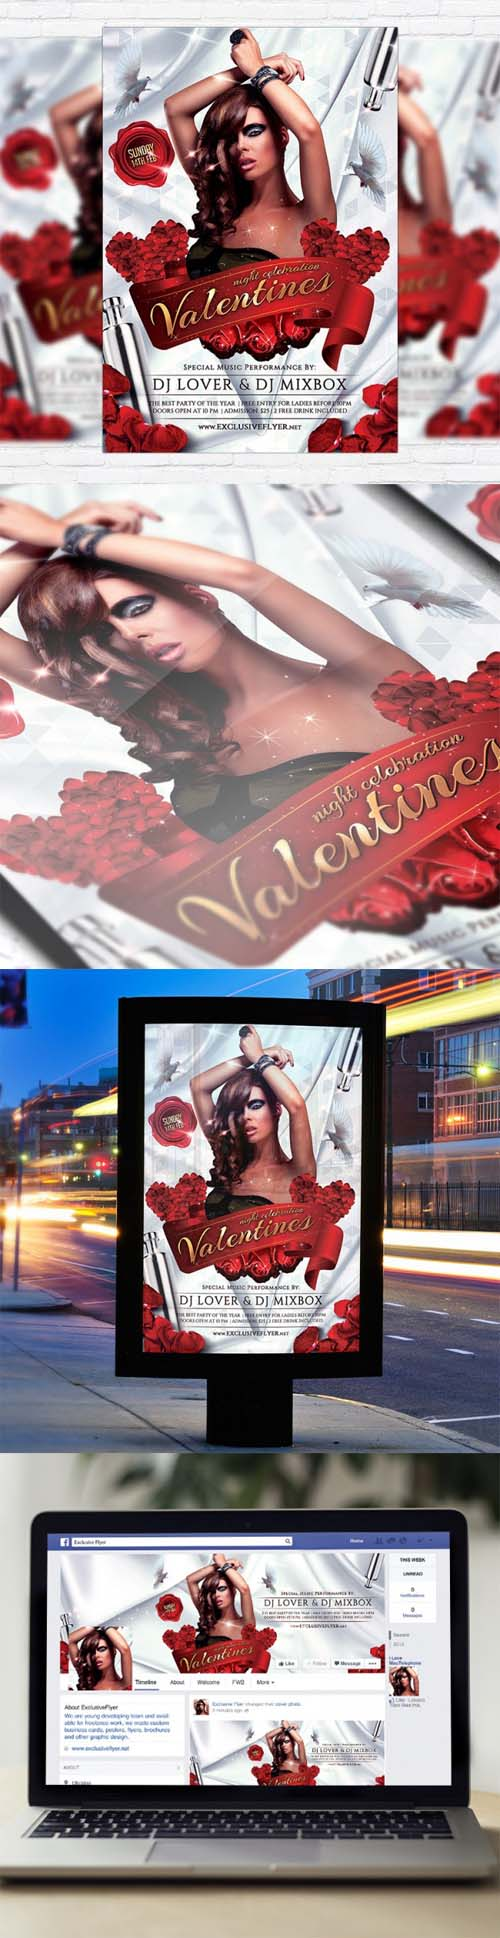 Flyer Template - Valentines Night Celebration + Facebook Cover